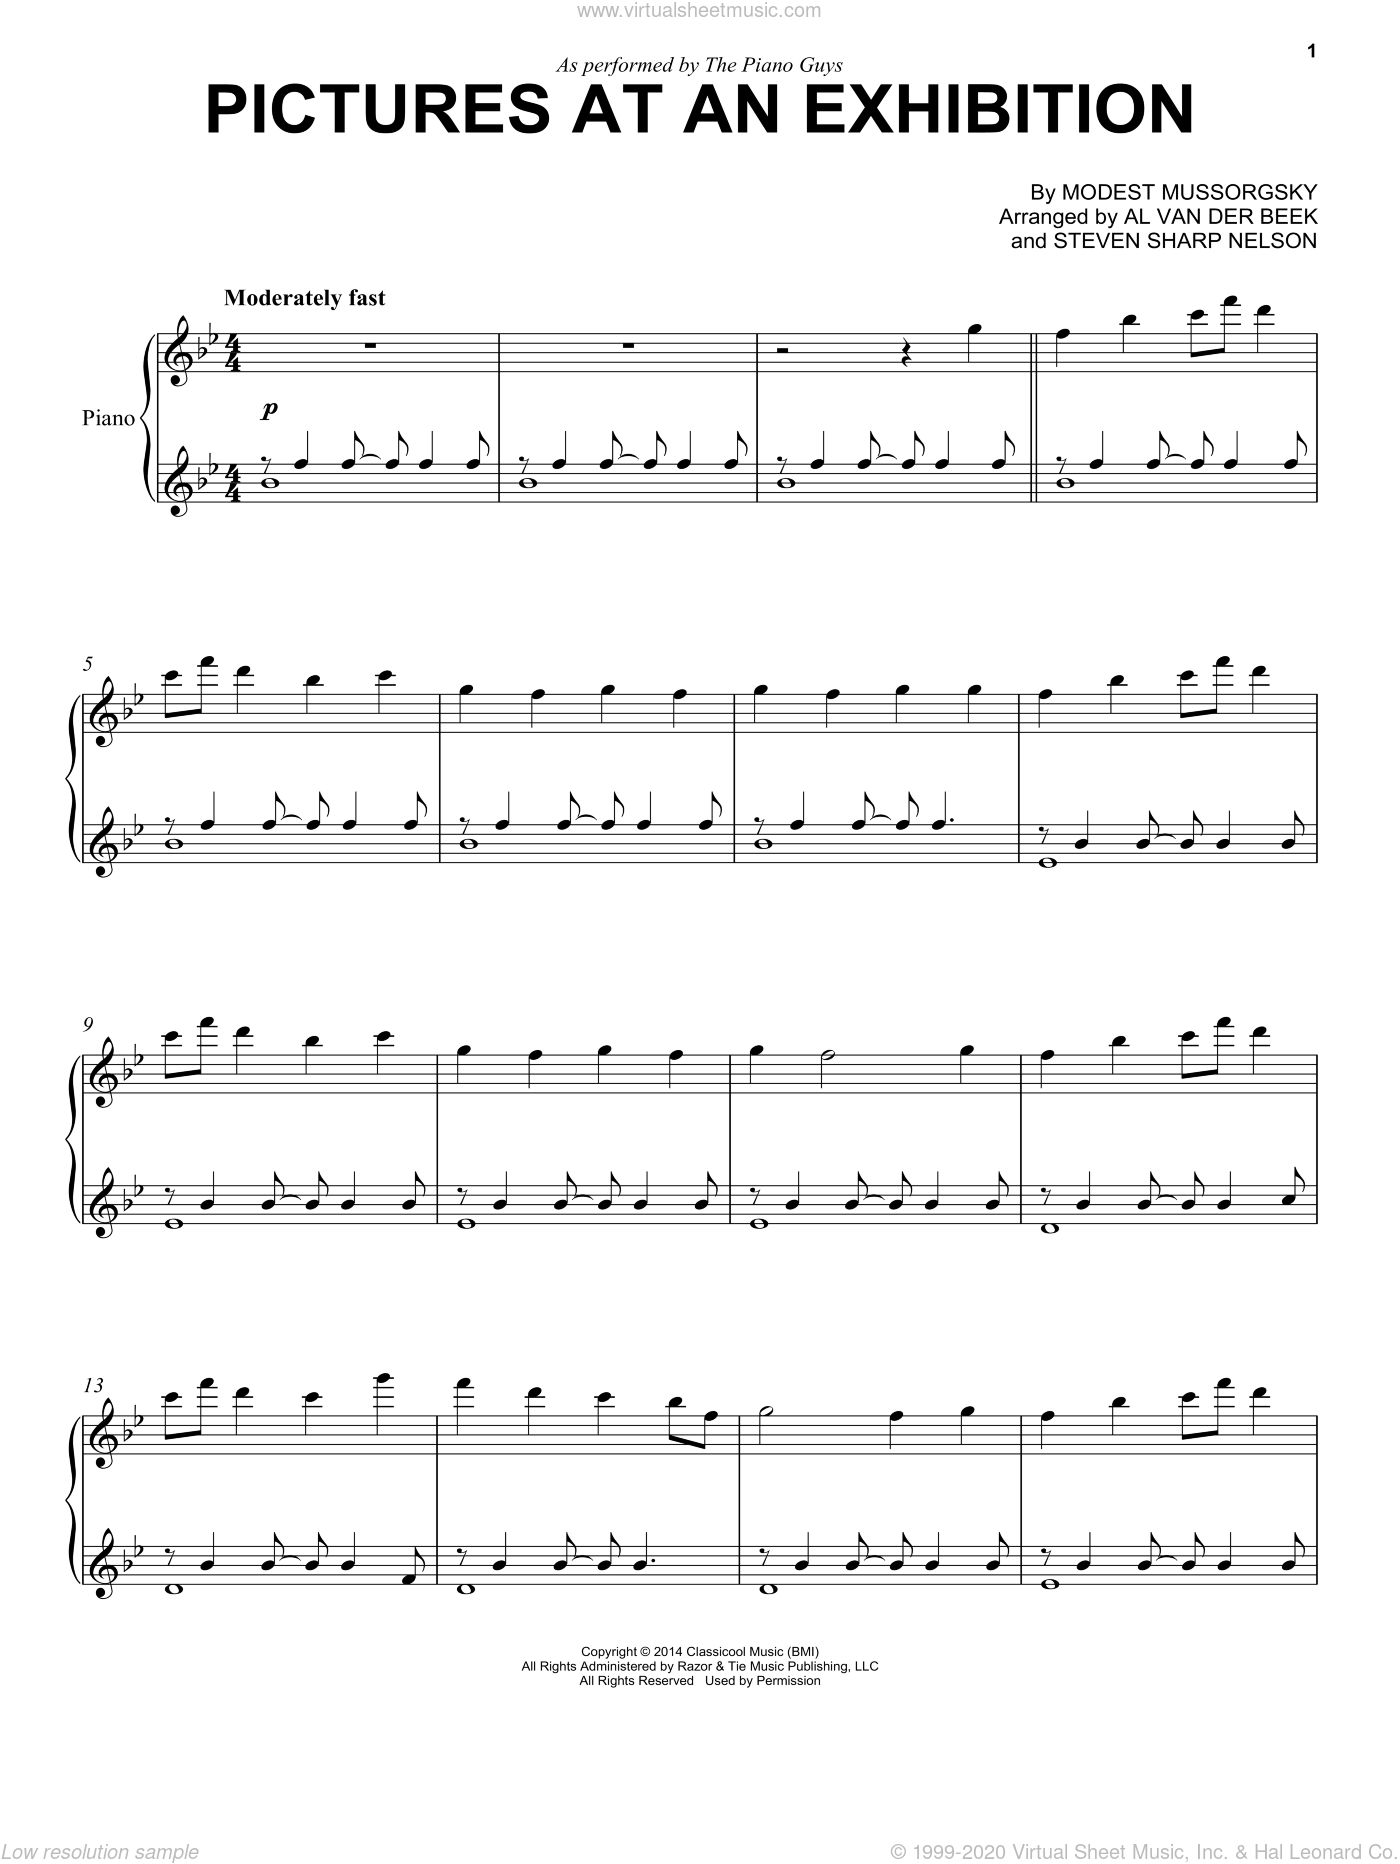 Pictures At An Exhibition sheet music for piano solo by The Piano Guys and Modest Petrovic Mussorgsky, classical score, intermediate piano. Score Image Preview.